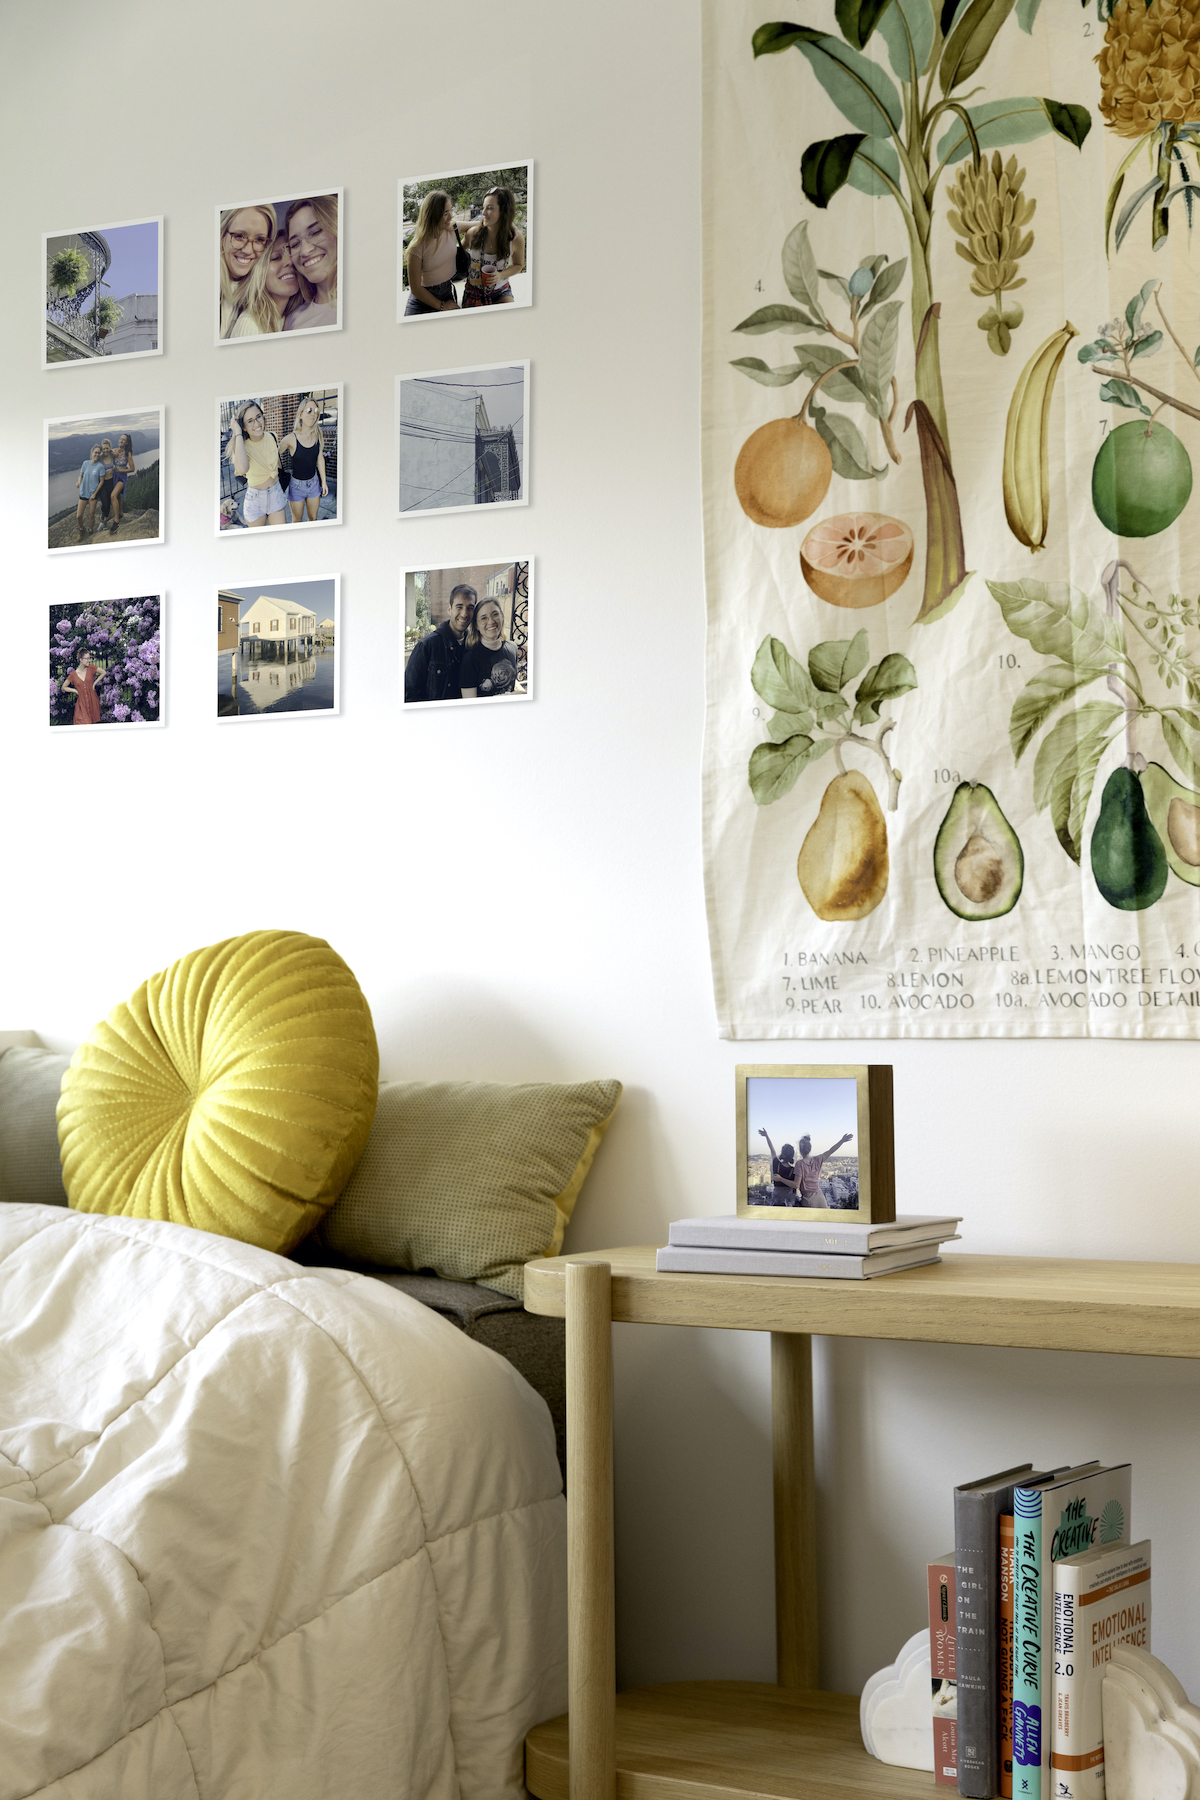 Artifact Uprising prints above bed next to tapestry and nightstand with photo display box